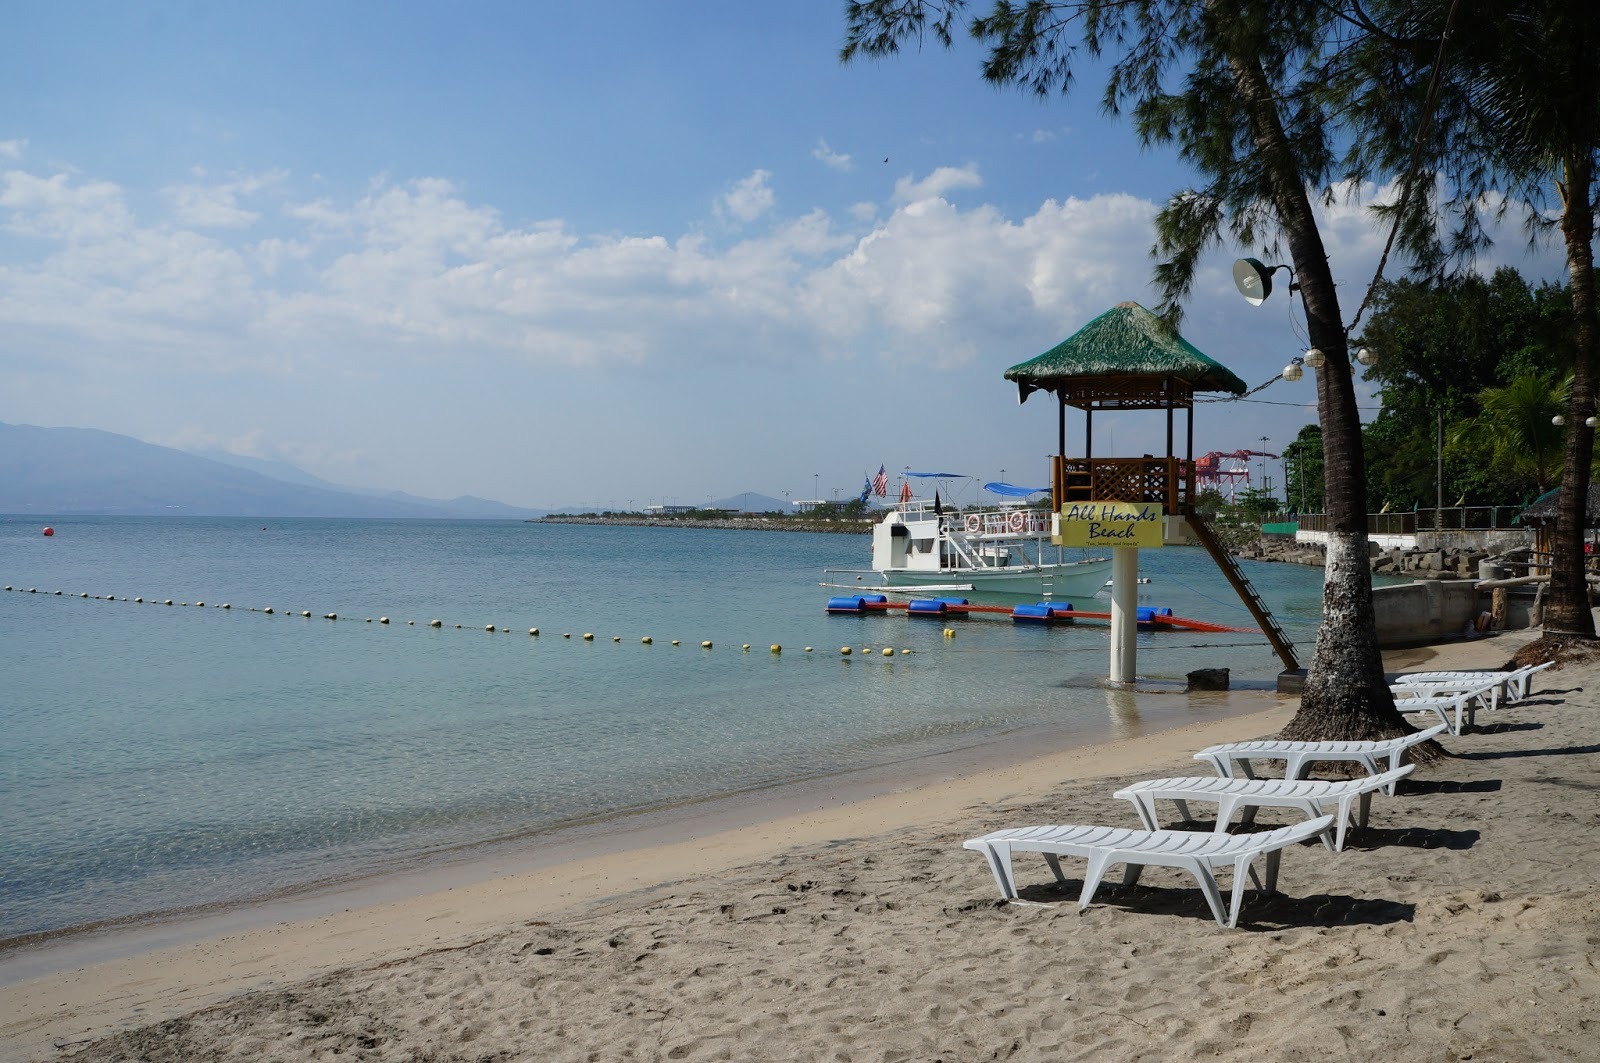 All Hands Beach Subic Bay Freeport Zones 39 Beach Resort For Everyone Wazzup Pilipinas News